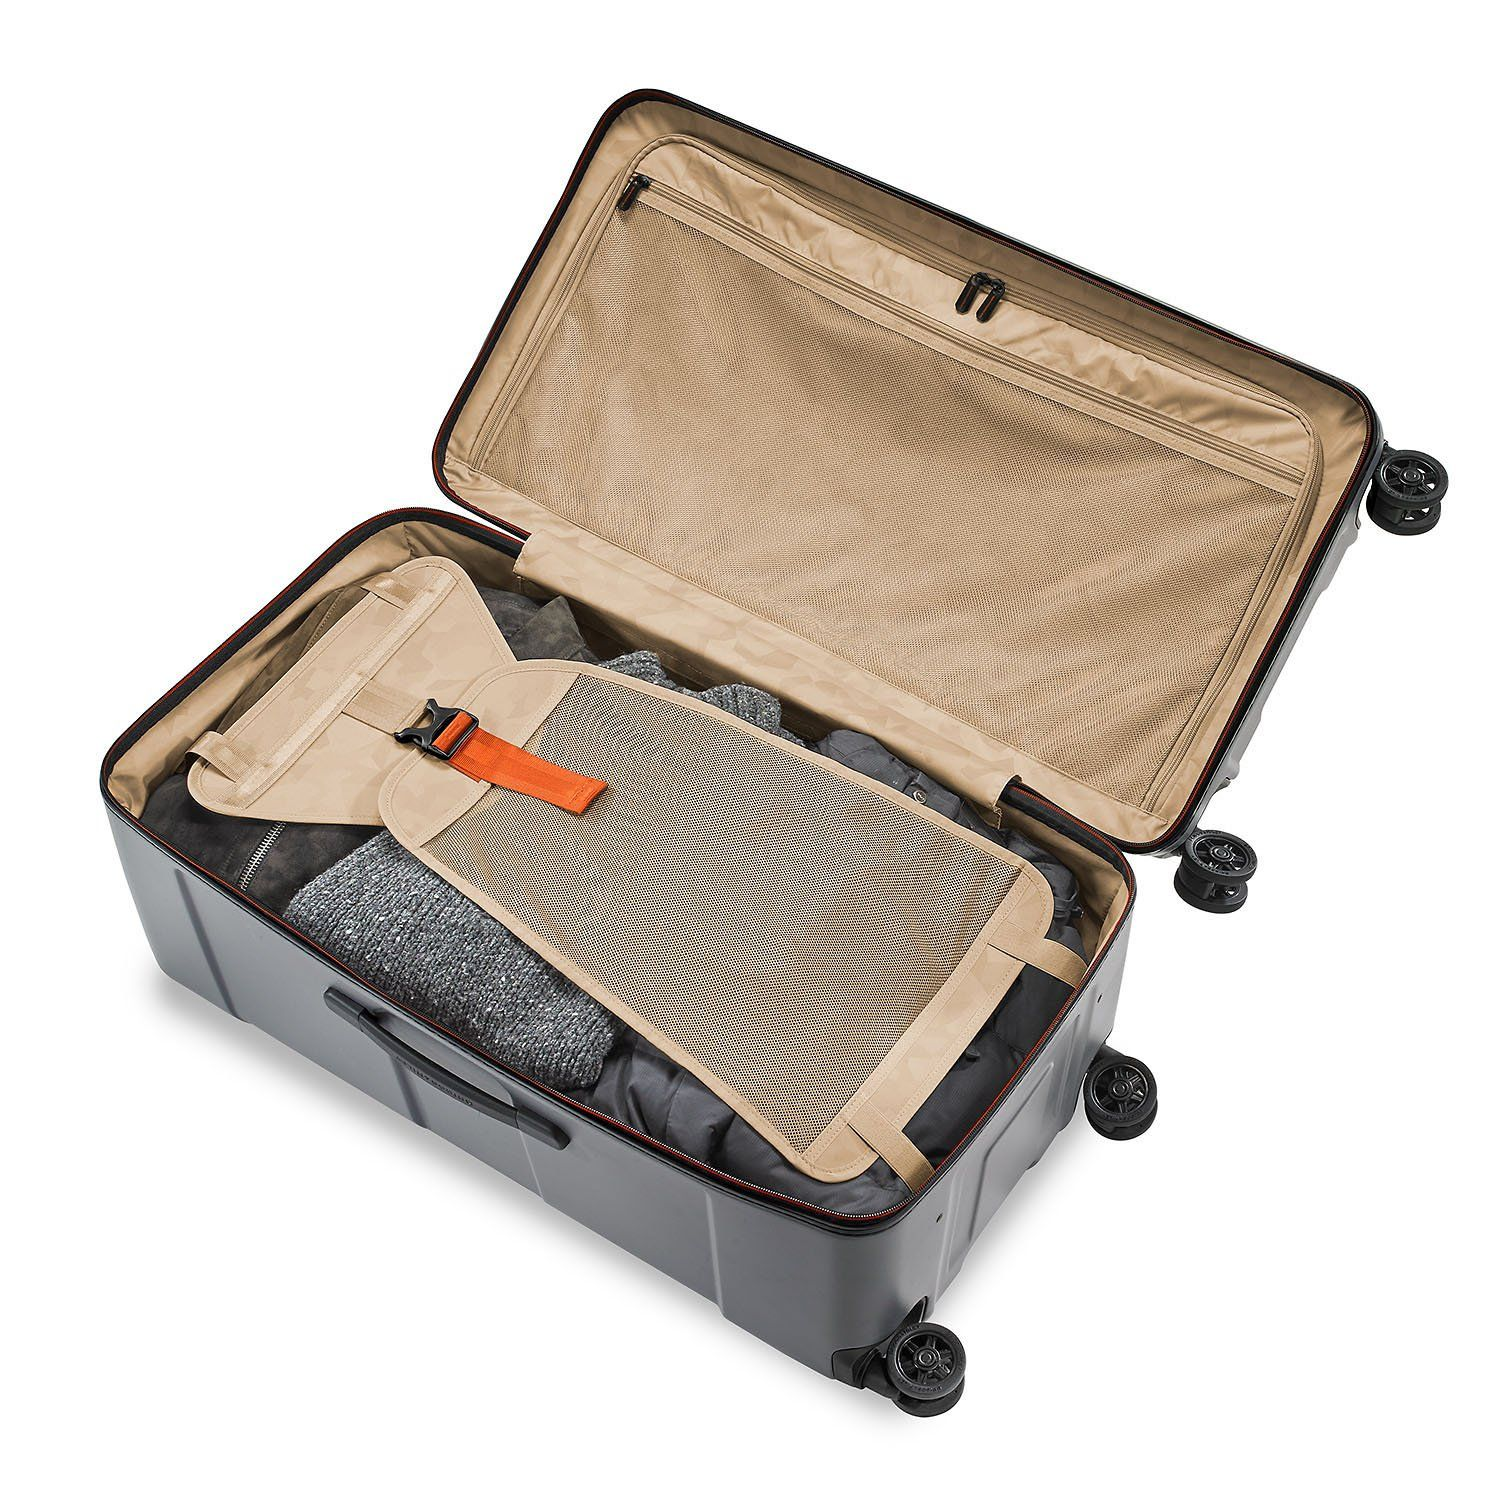 Torq Extra Large Trunk spinner